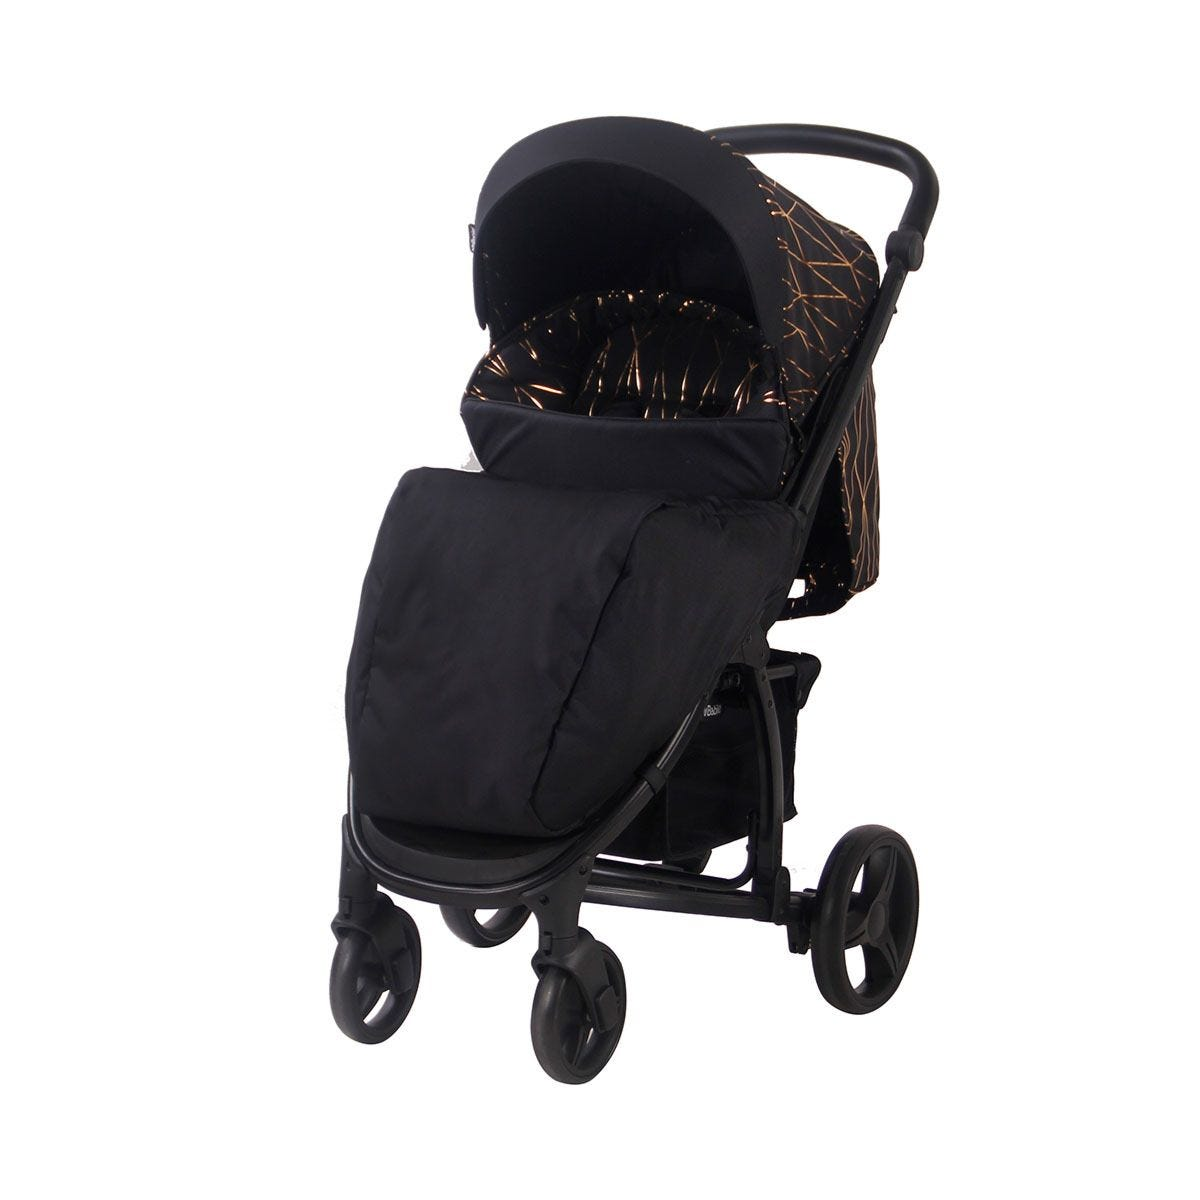 My Babiie MB200 Travel System - Black and Rose Gold